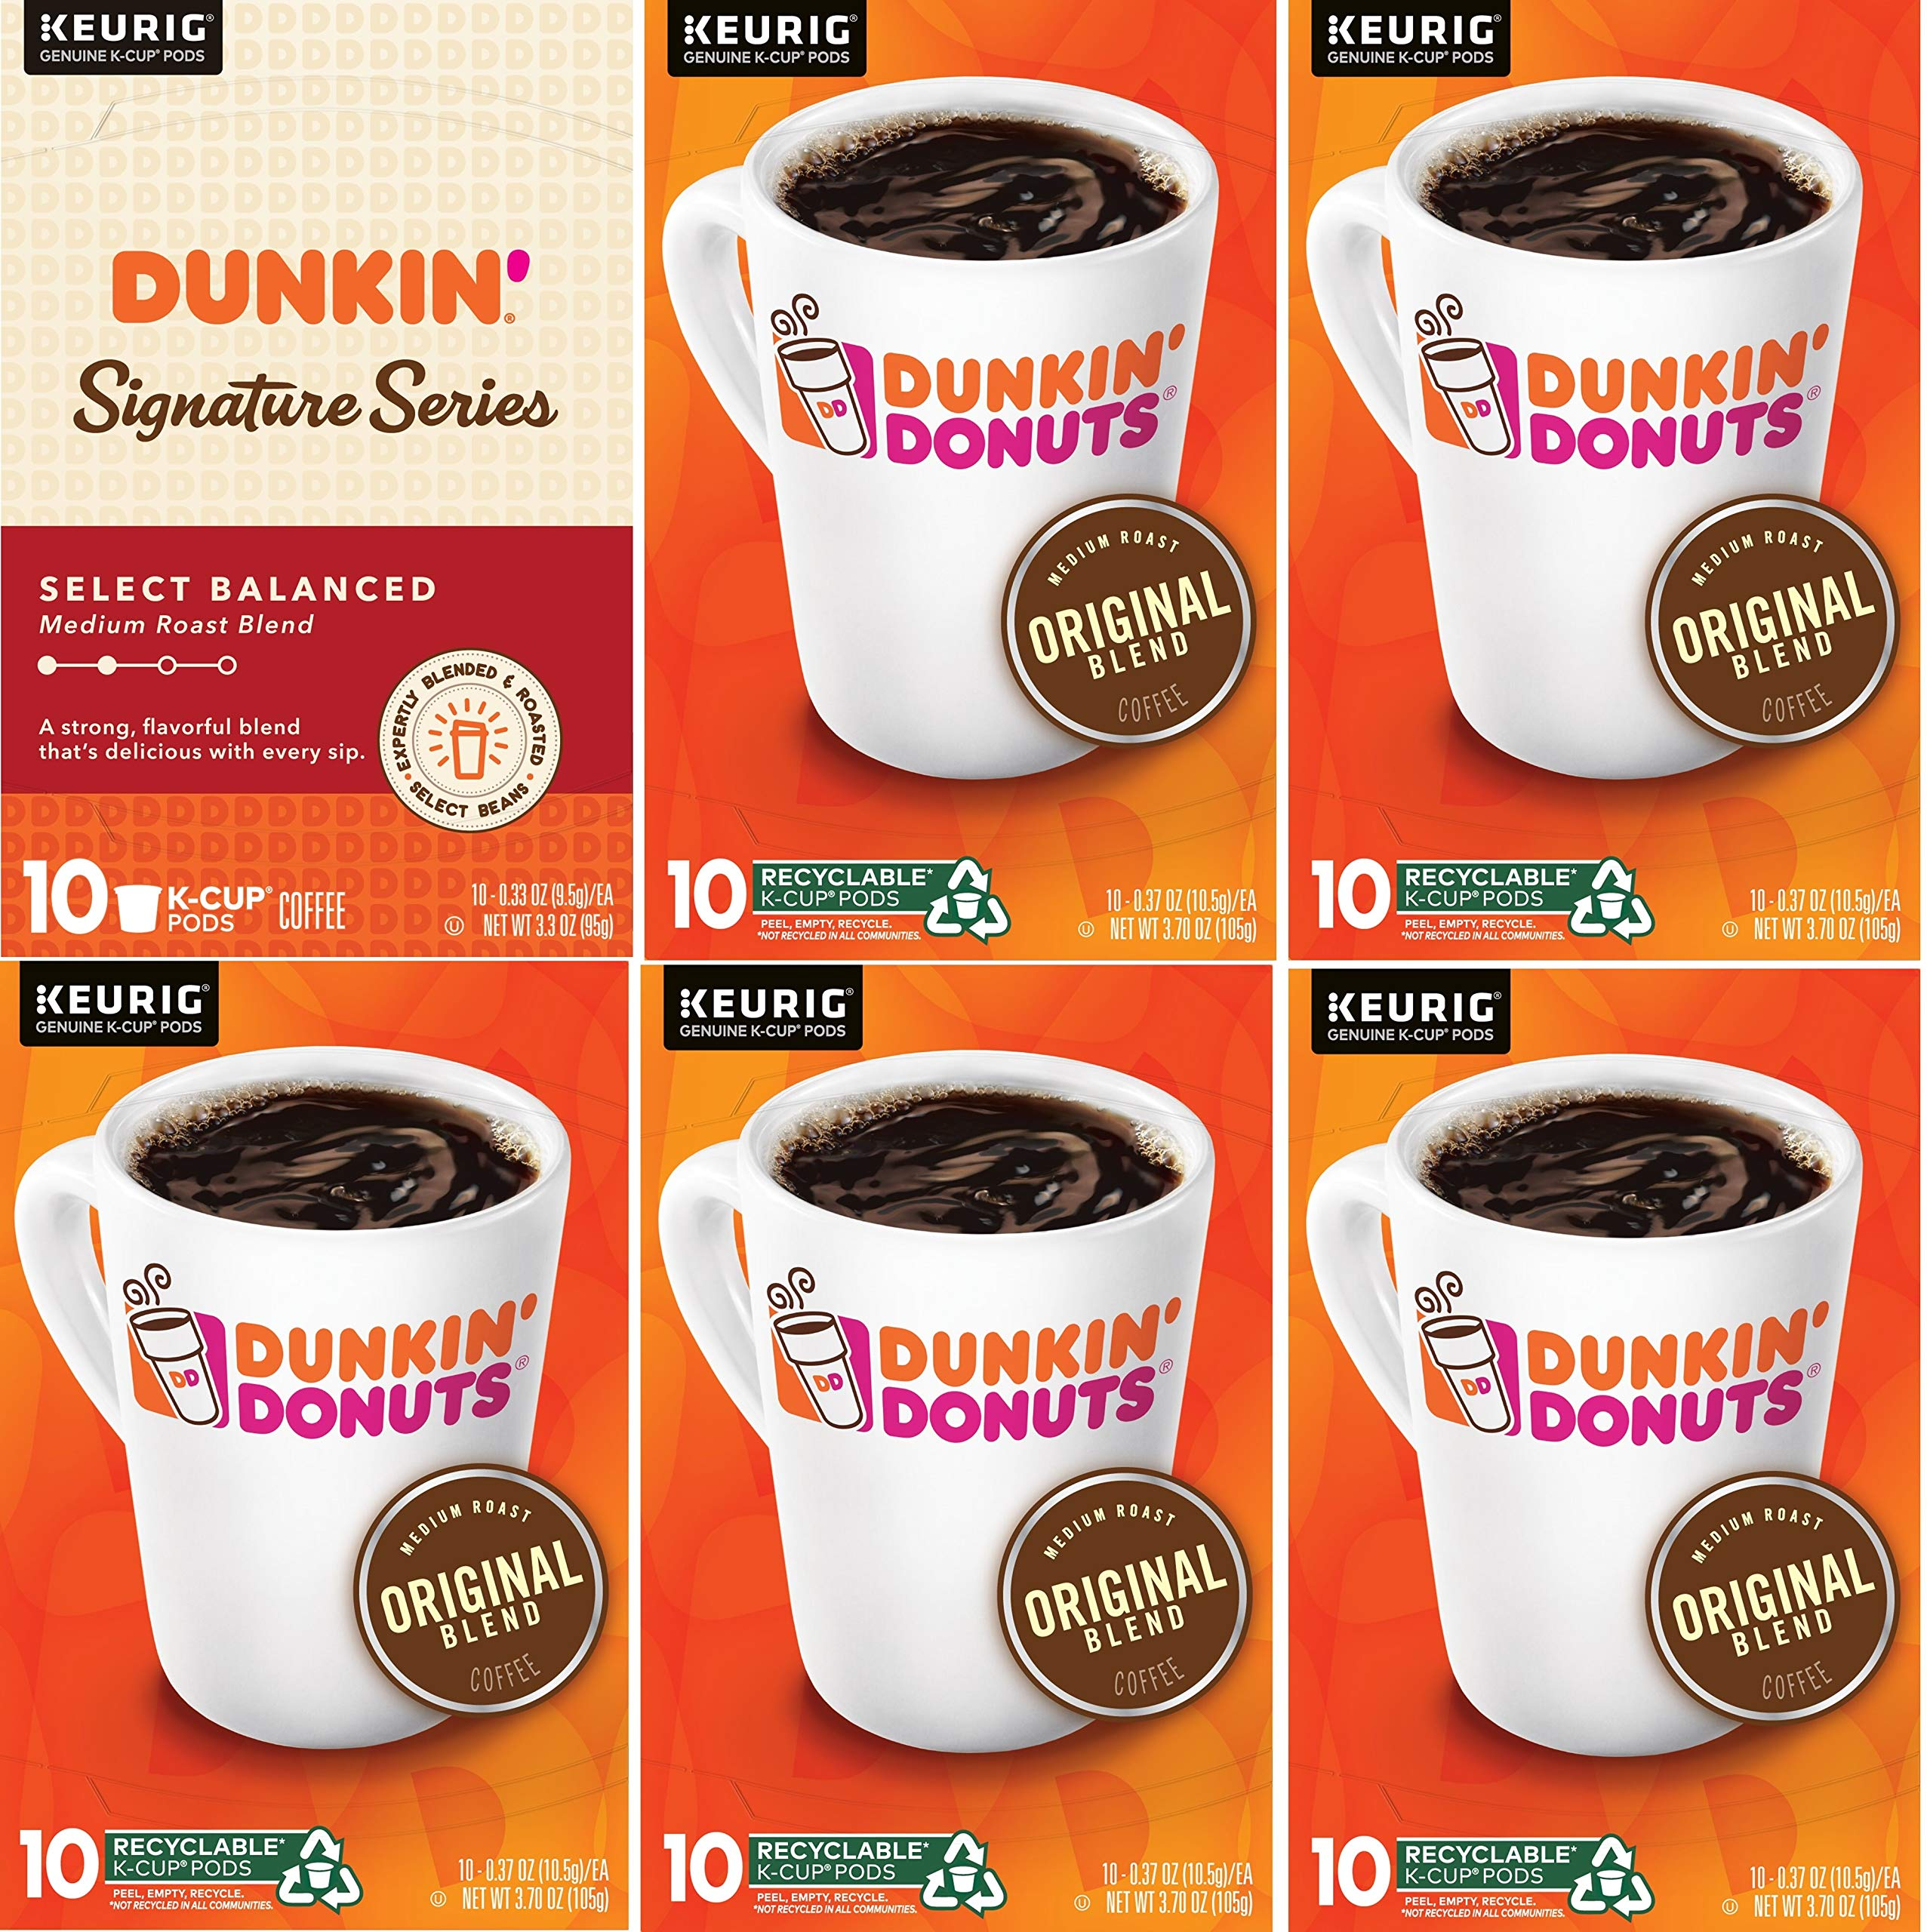 Dunkin' Donuts Donuts Original Blend & Signature Series Select Balanced Blend Medium Roast Coffee, Variety Pack K Cups for Keurig Brewers, Original, 60Count by Dunkin' Donuts